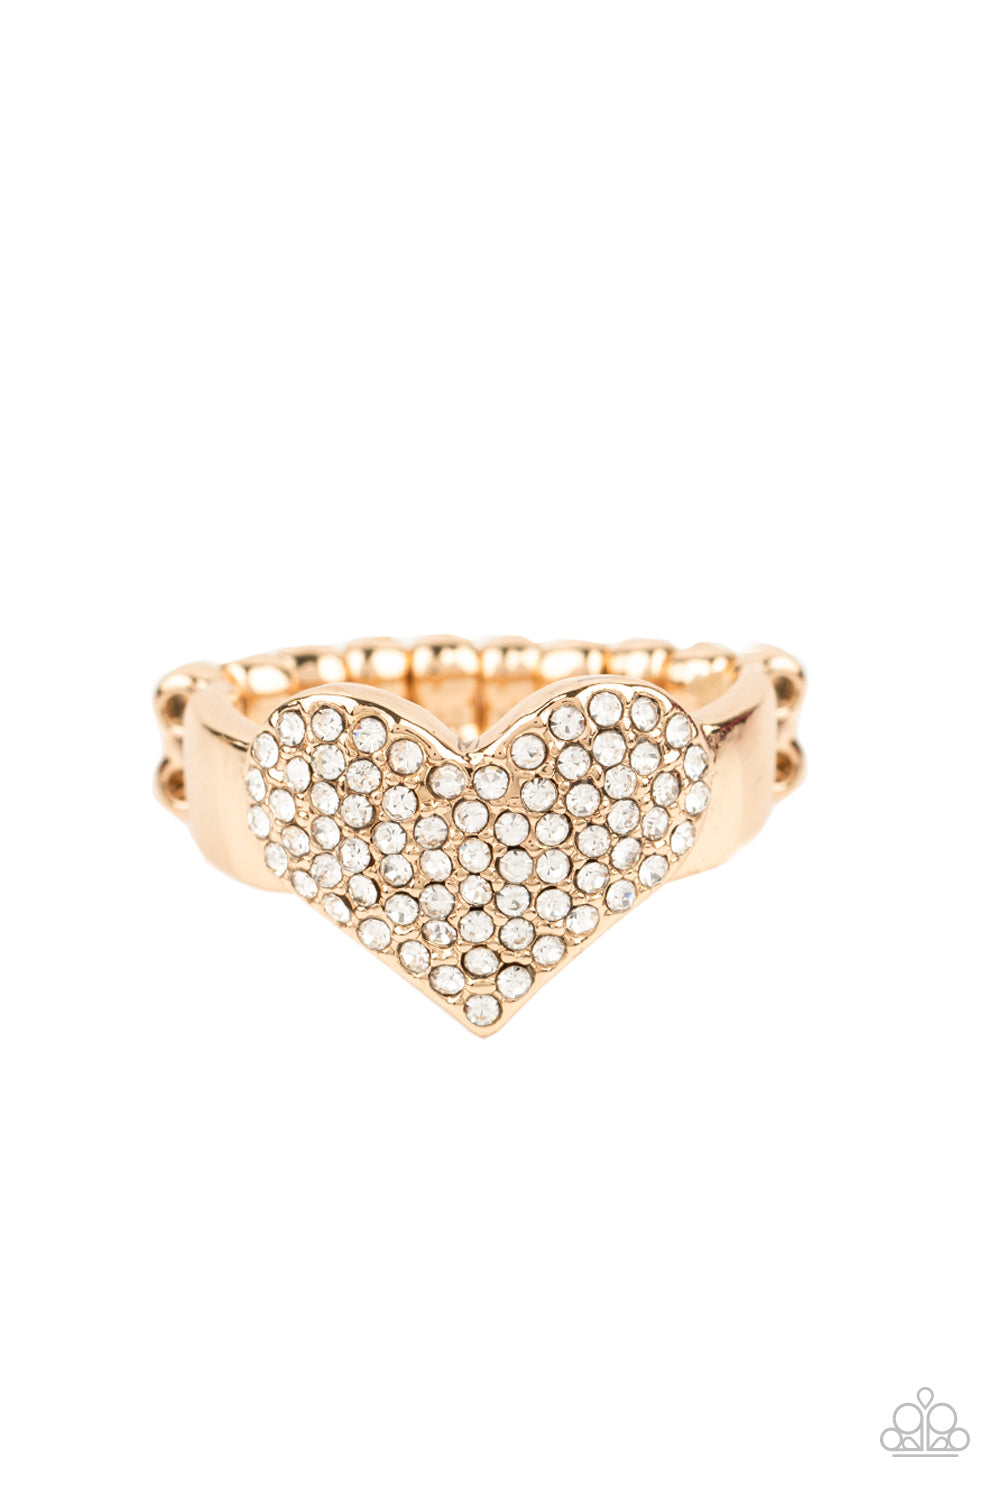 Paparazzi Ring ~ Heart of BLING - Gold